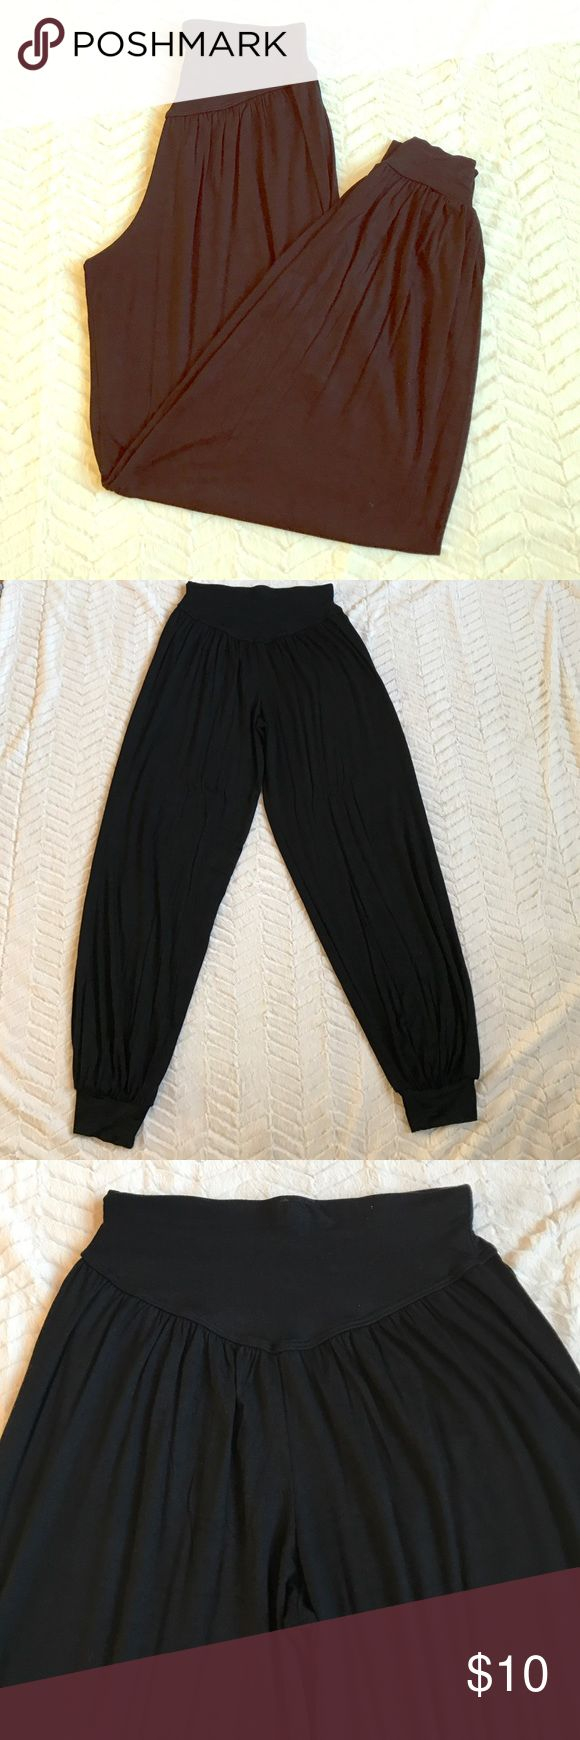 """Genie Pants Black Cotton NWOT. Size Small. Adorable pants!!! Wish they fit me. Waist is 12.5"""" lay flat. Inseam is 32"""". Never been worn! Pants"""